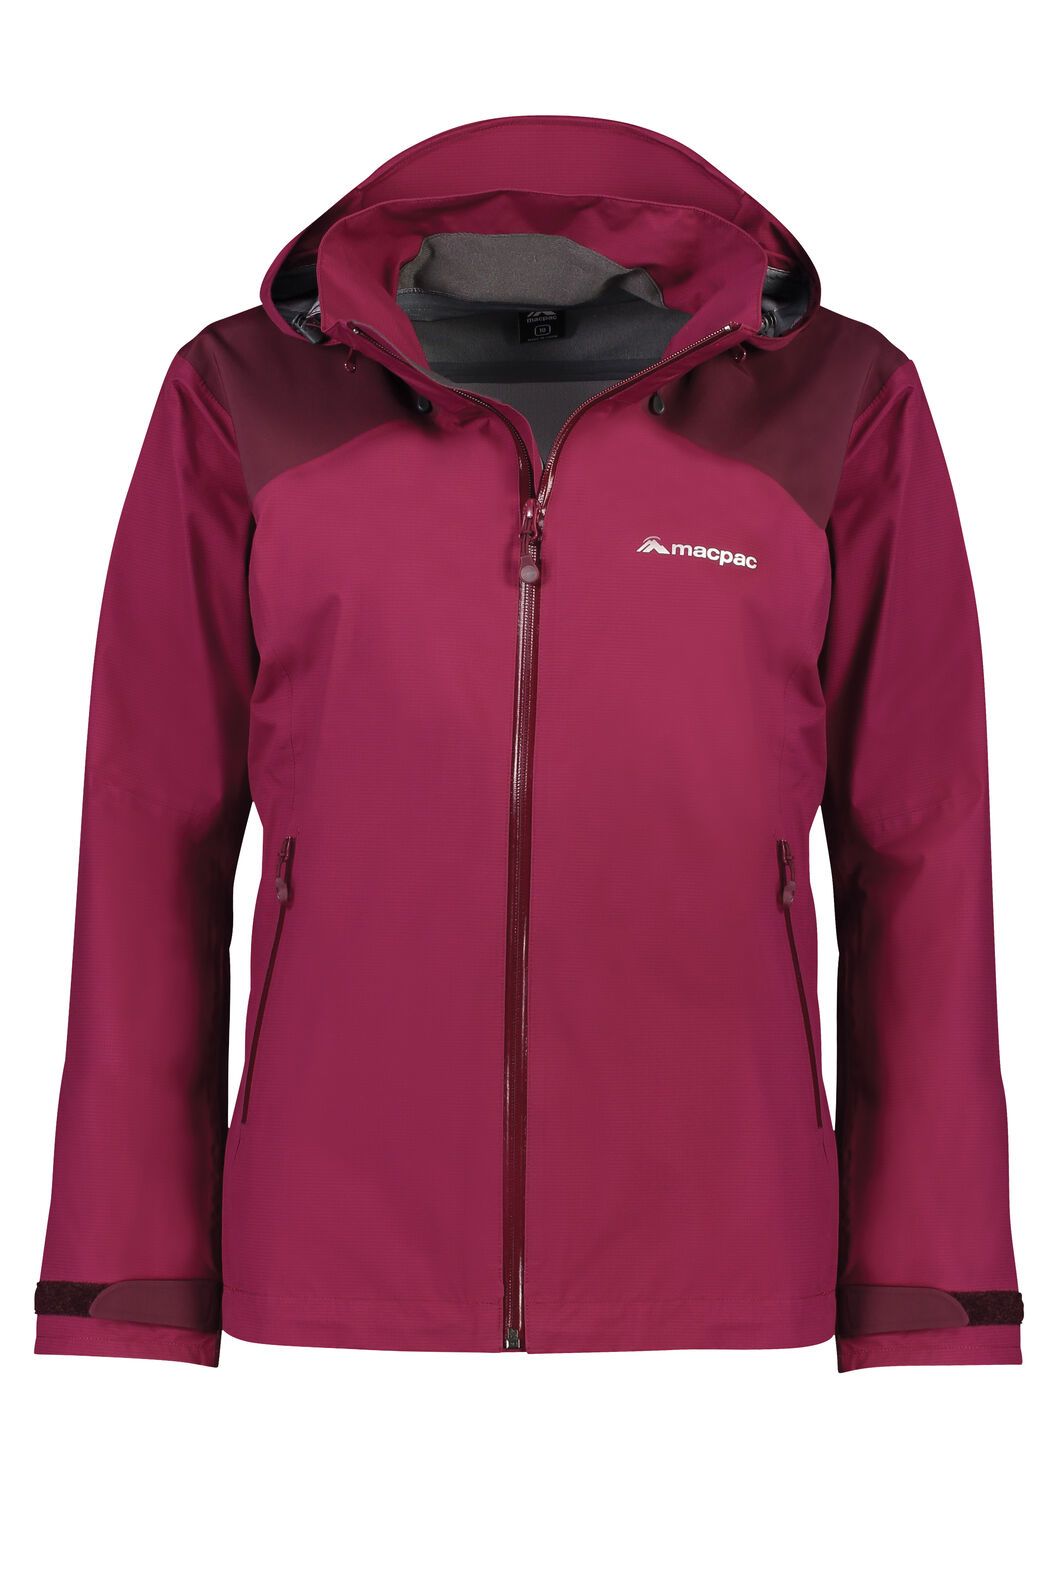 Macpac Traverse Pertex Shield® Rain Jacket - Women's, Beet Red, hi-res